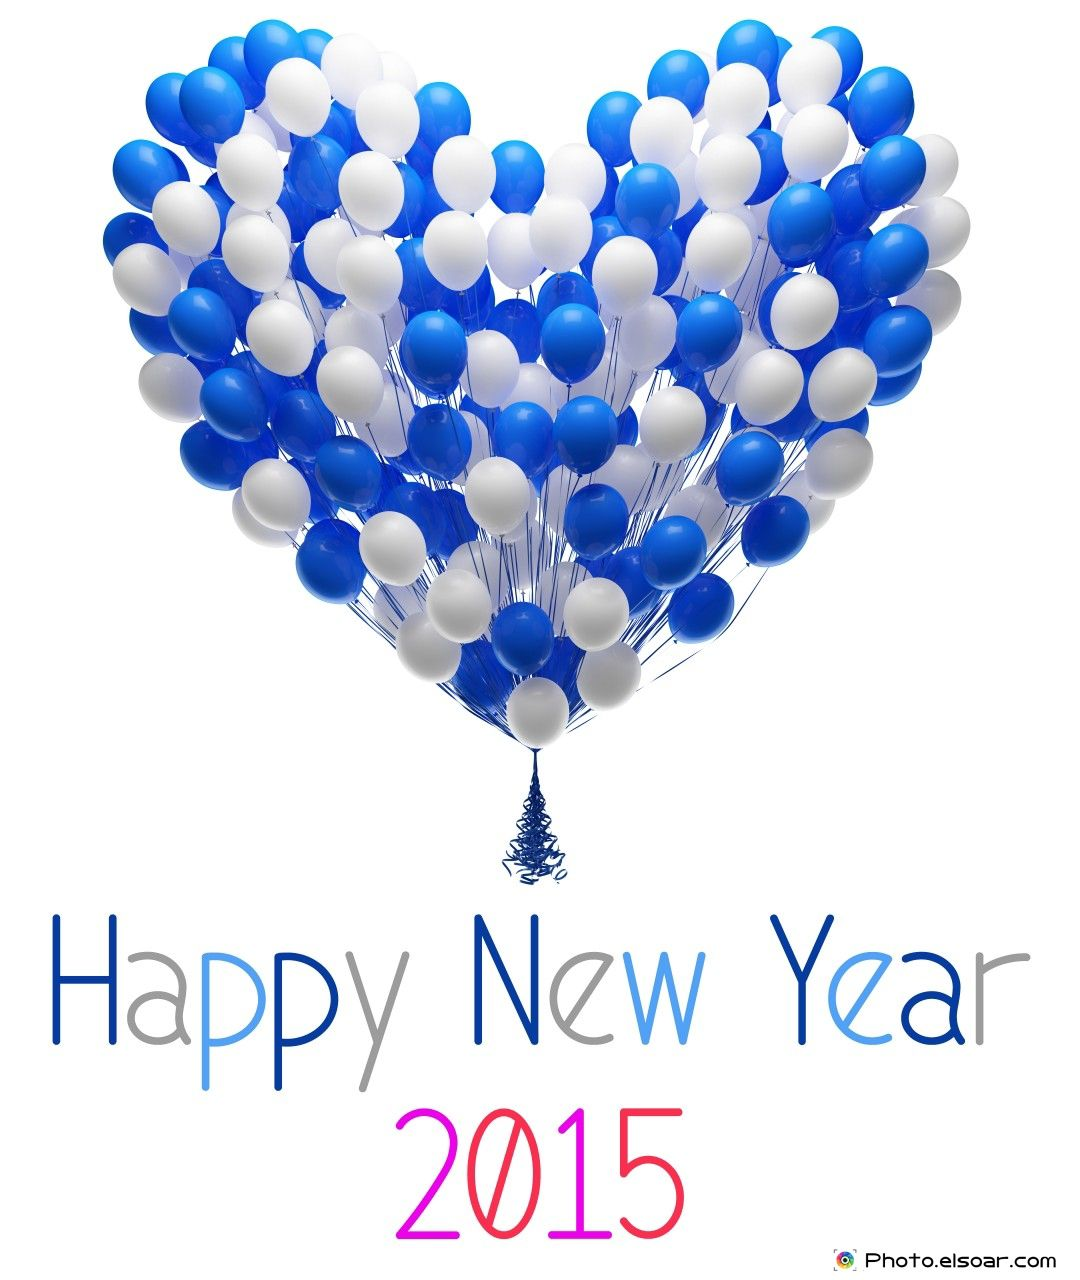 Top 10 Happy New Year 2015 Wallpapers Top Wallpapers 1080x1280